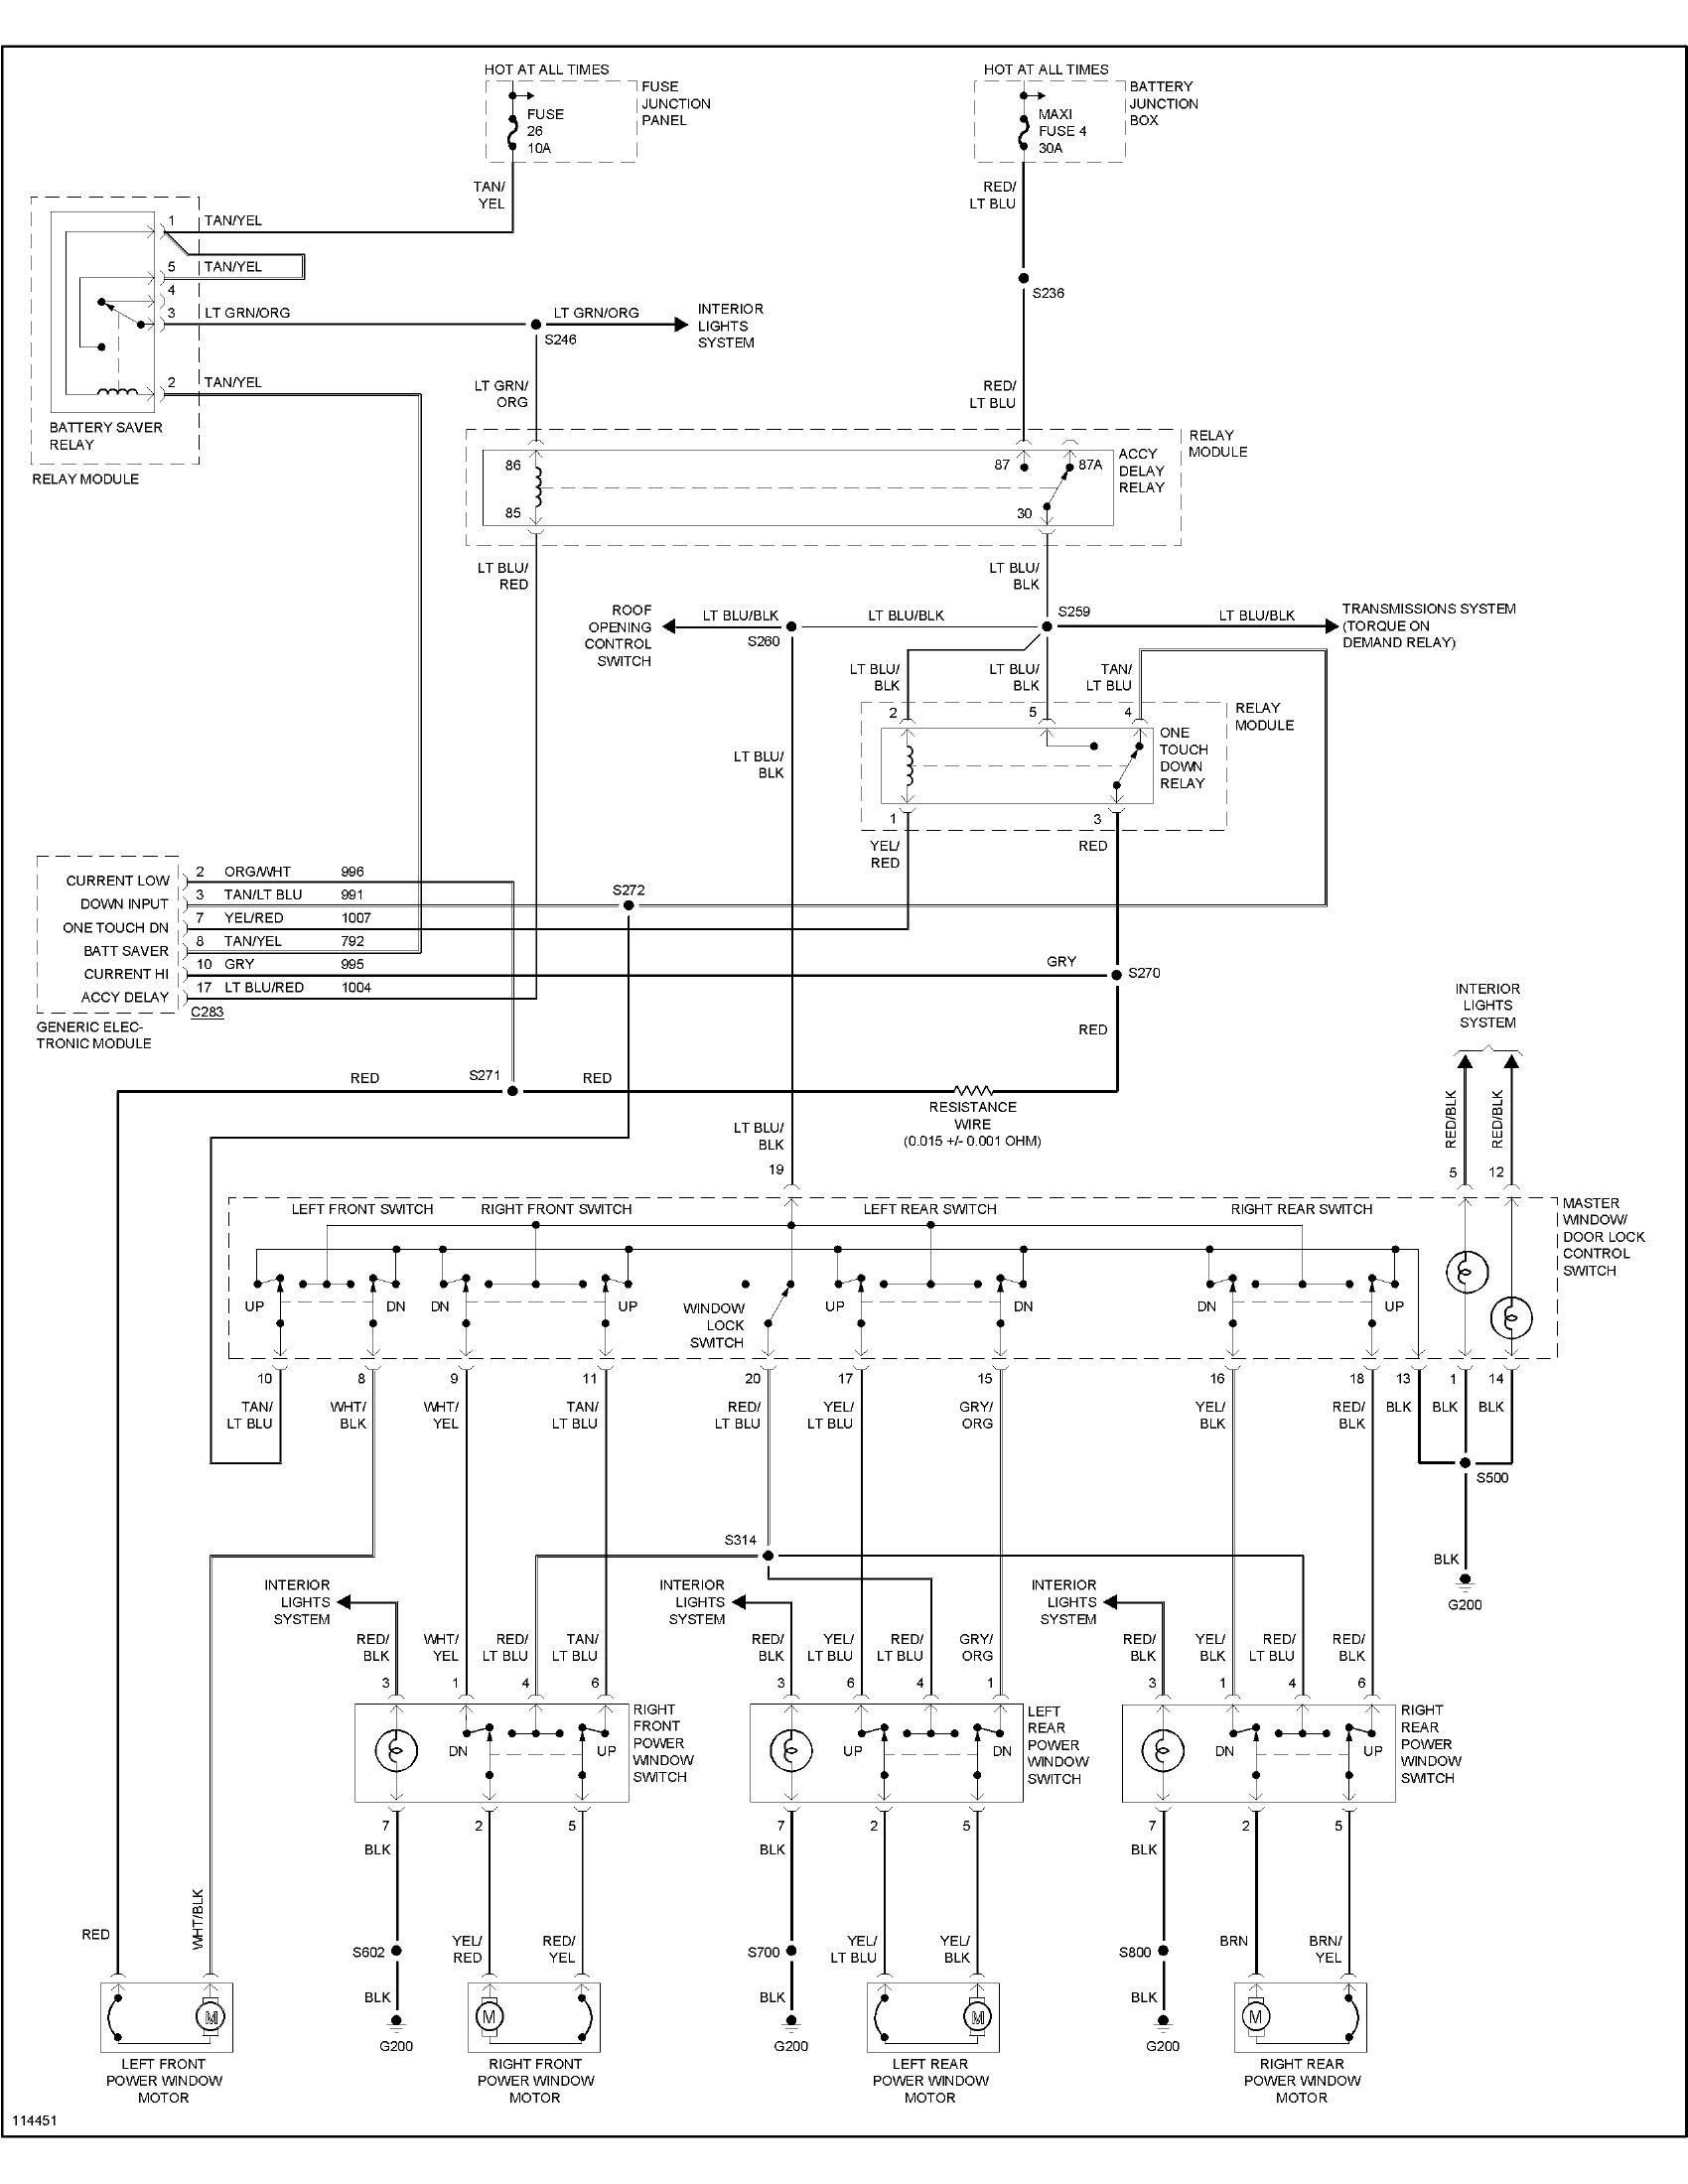 fuse box for ford 500 wiring library 2007 ford focus fuse diagram 2005 ford explorer ac wiring wiring diagram 2005 ford 500 fuse box diagram ford explorer fuse